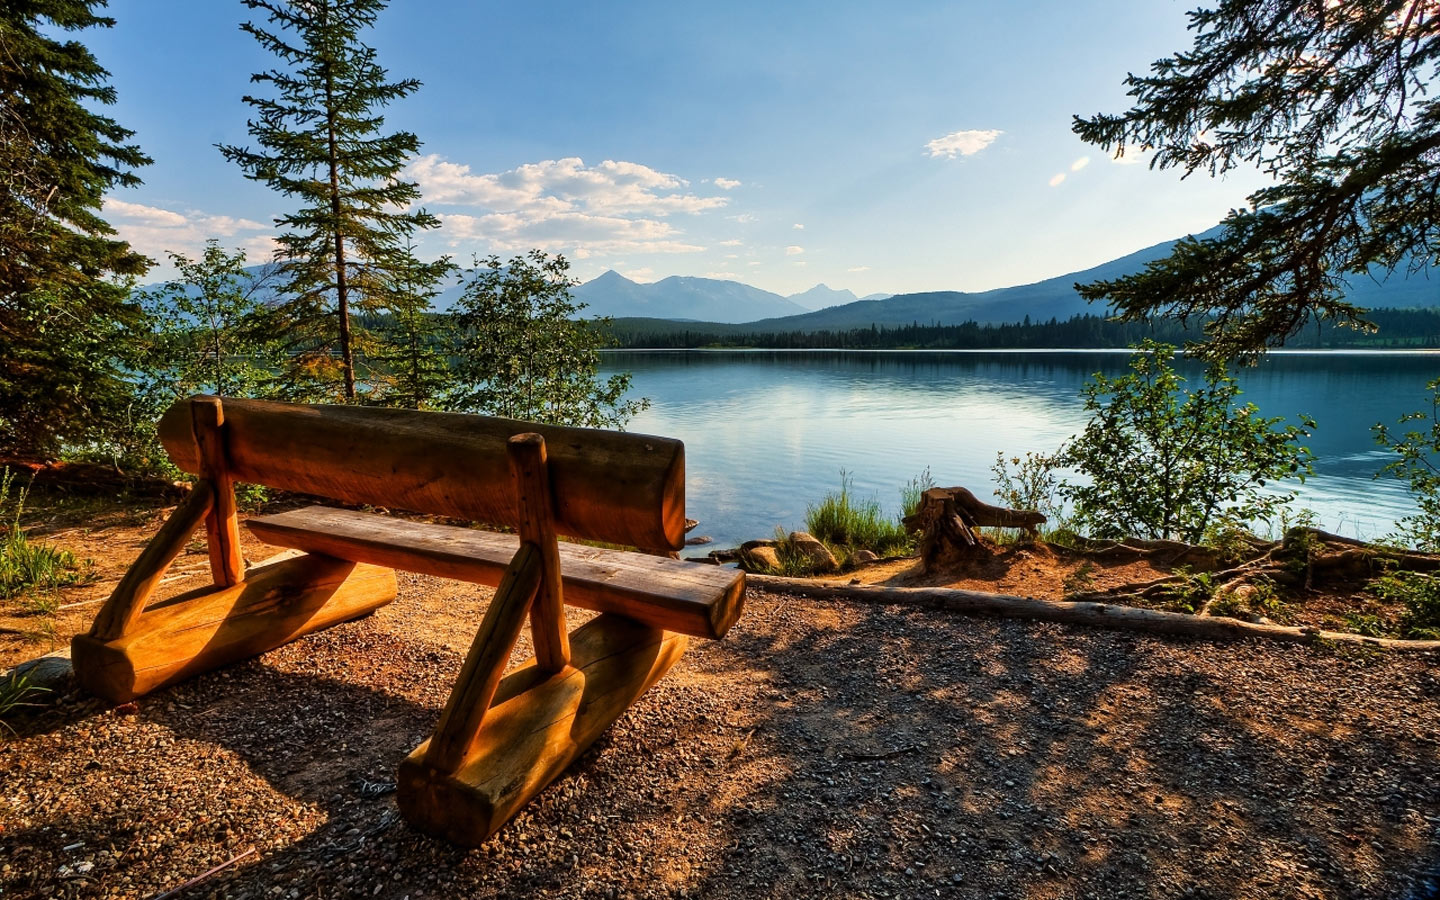 Wooden-Bench-Near-Lake-1440x900-Wallpaper-WallpapersHunt.com-